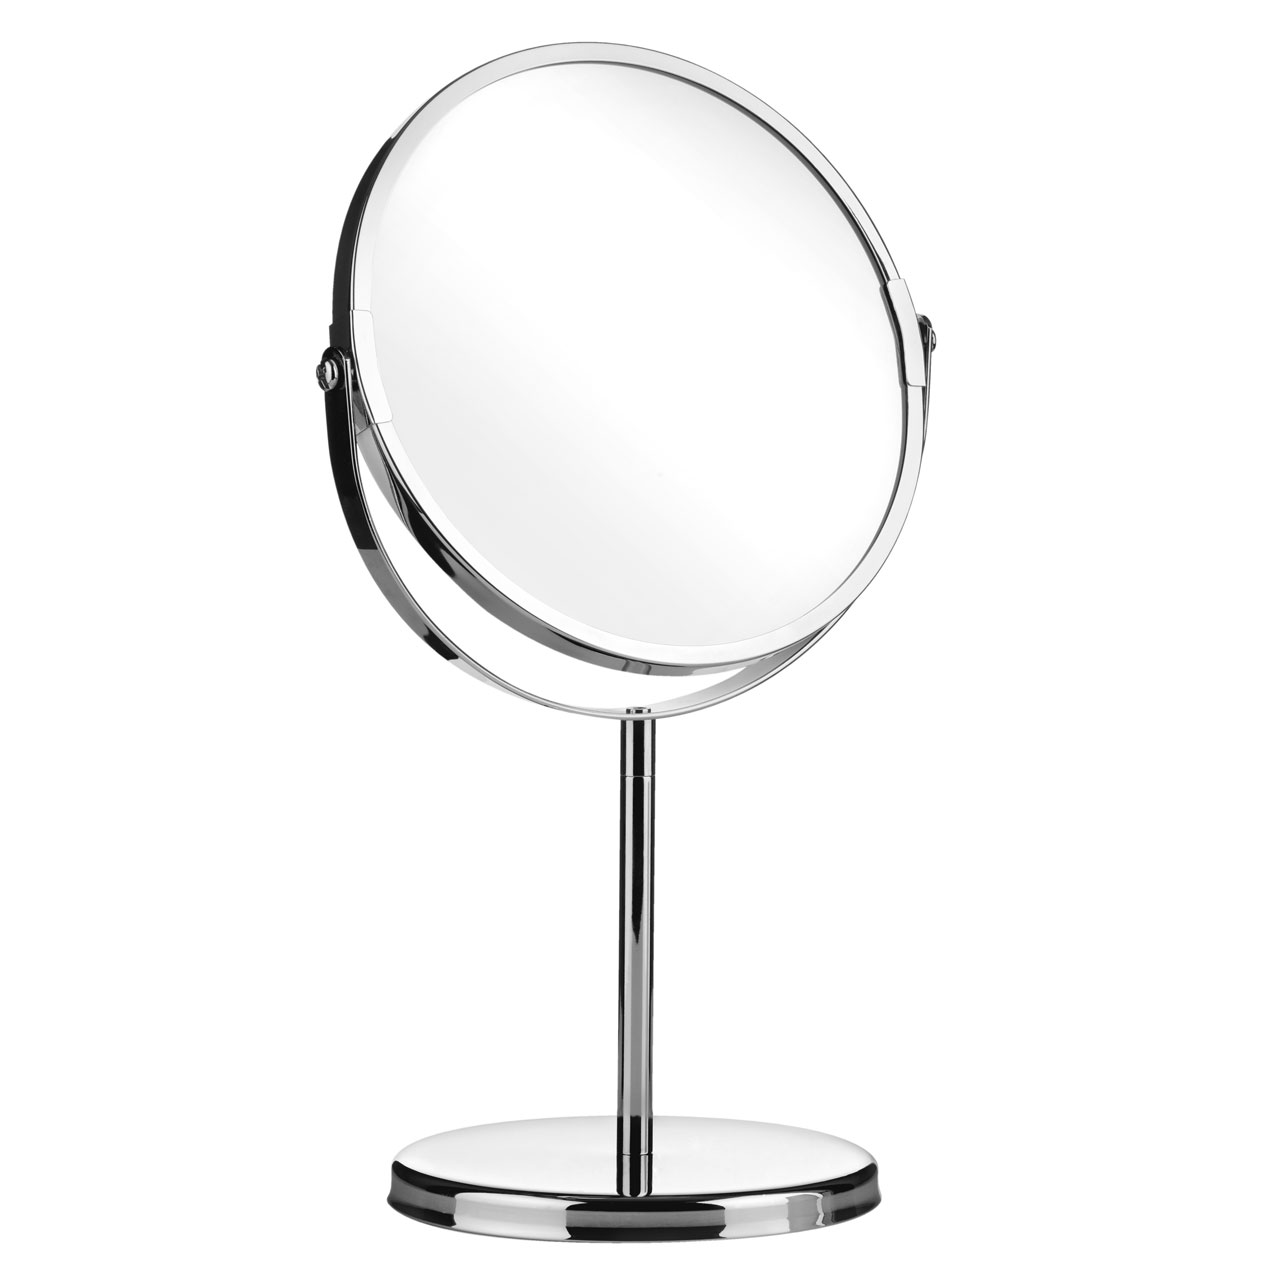 Free Standing Bathroom Mirrors Chrome Effect Free Standing Modern Bathroom Shaving Swivel